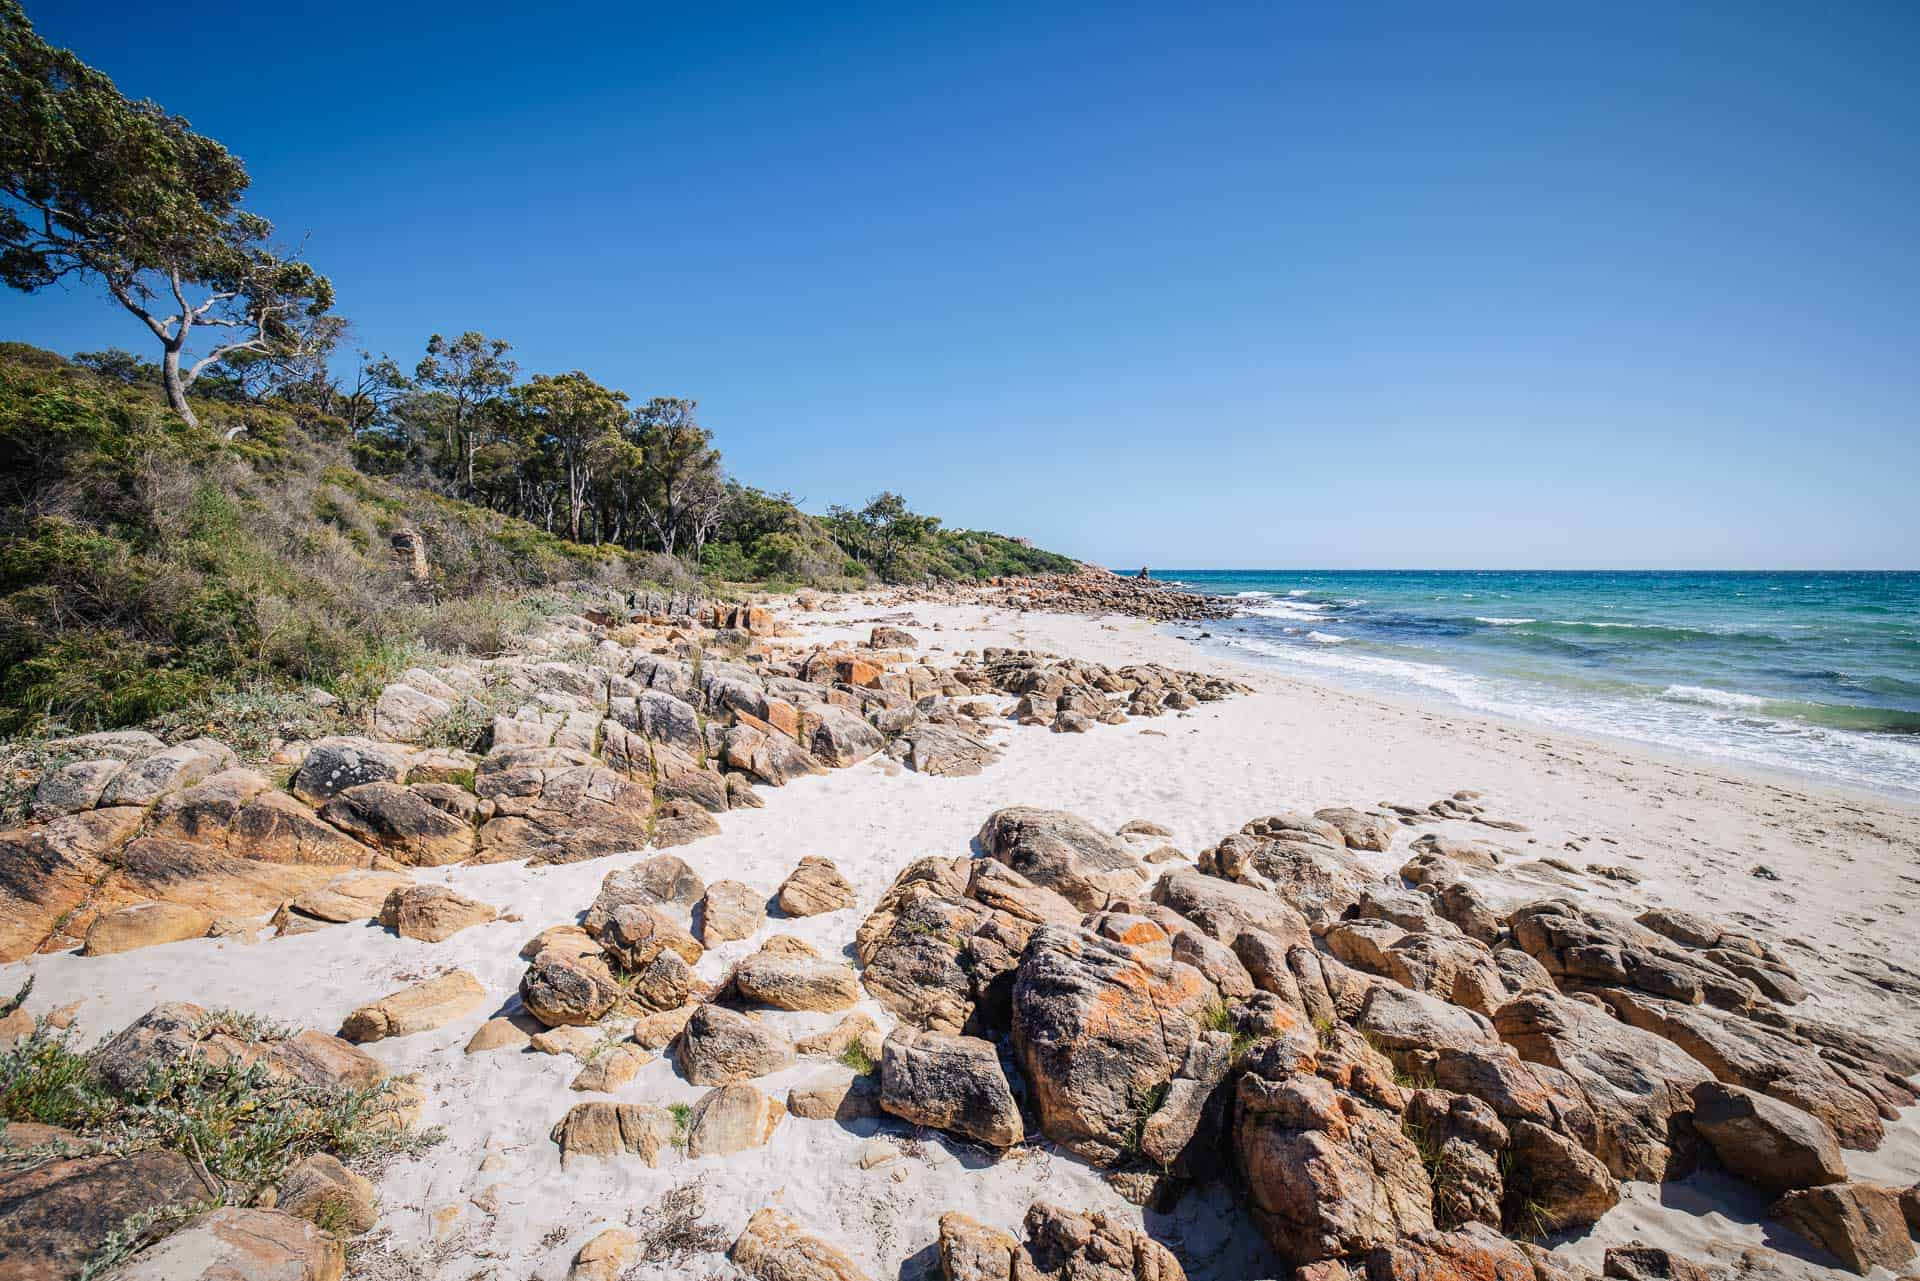 things to do in margaret river, what to do in margaret river, best things to do in margaret river, things to do margaret river, castle rock beach